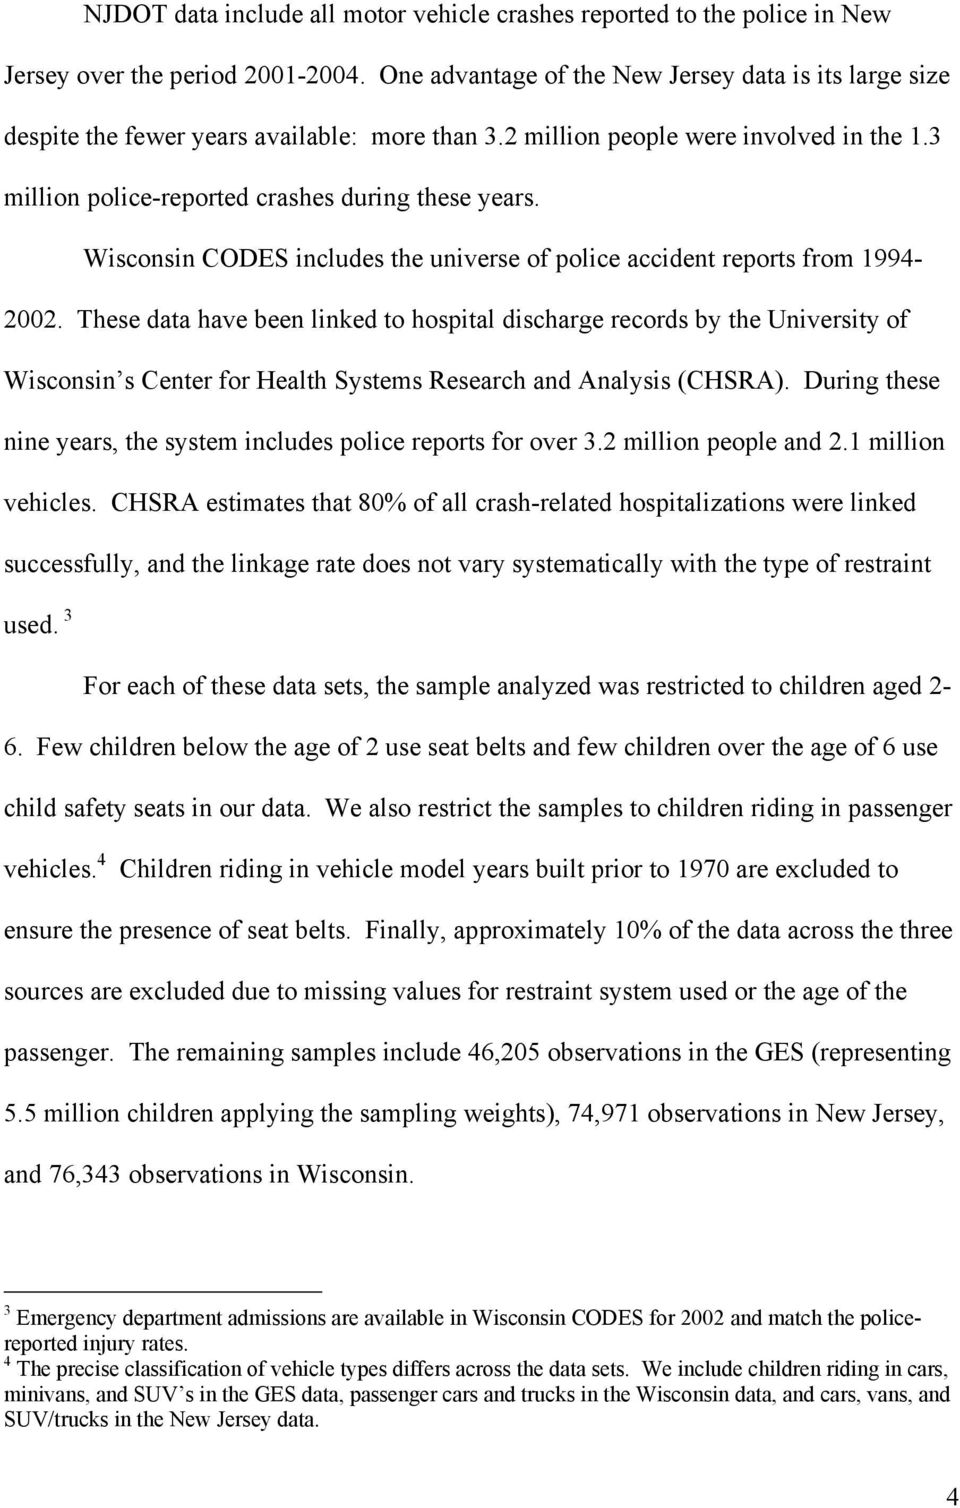 Wisconsin CODES includes the universe of police accident reports from 1994-2002.